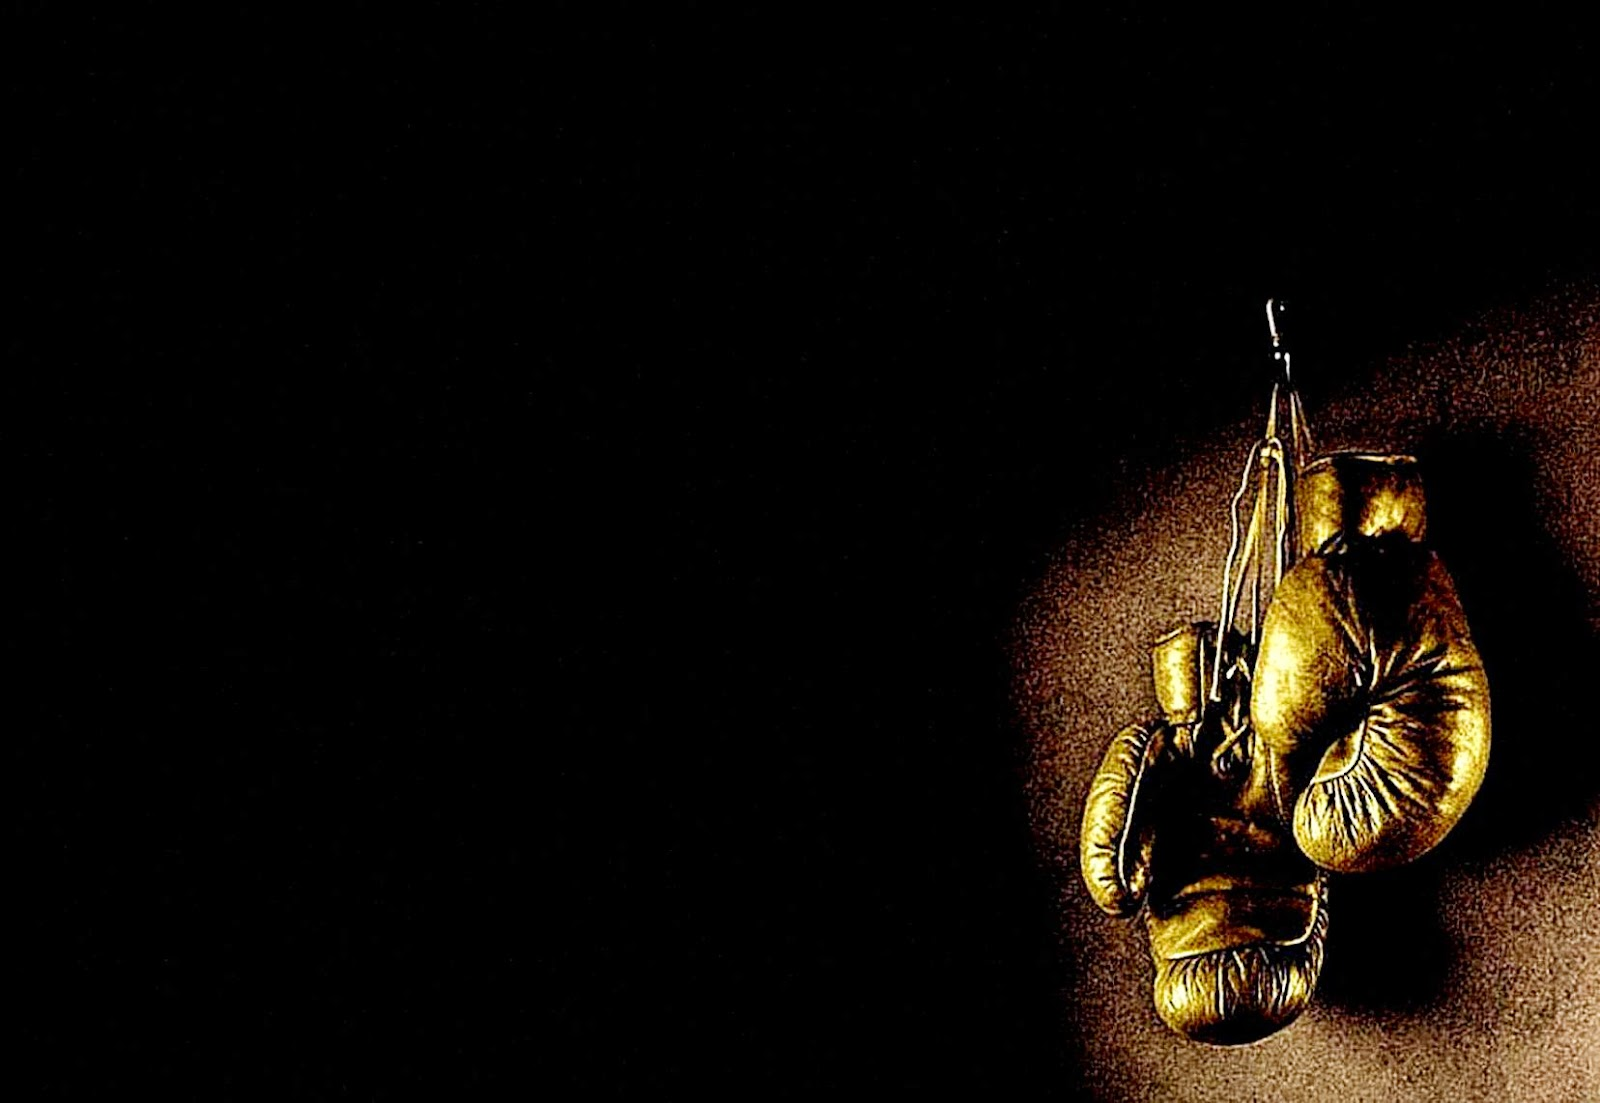 Wallpapers For gt Boxing Gloves Wallpaper